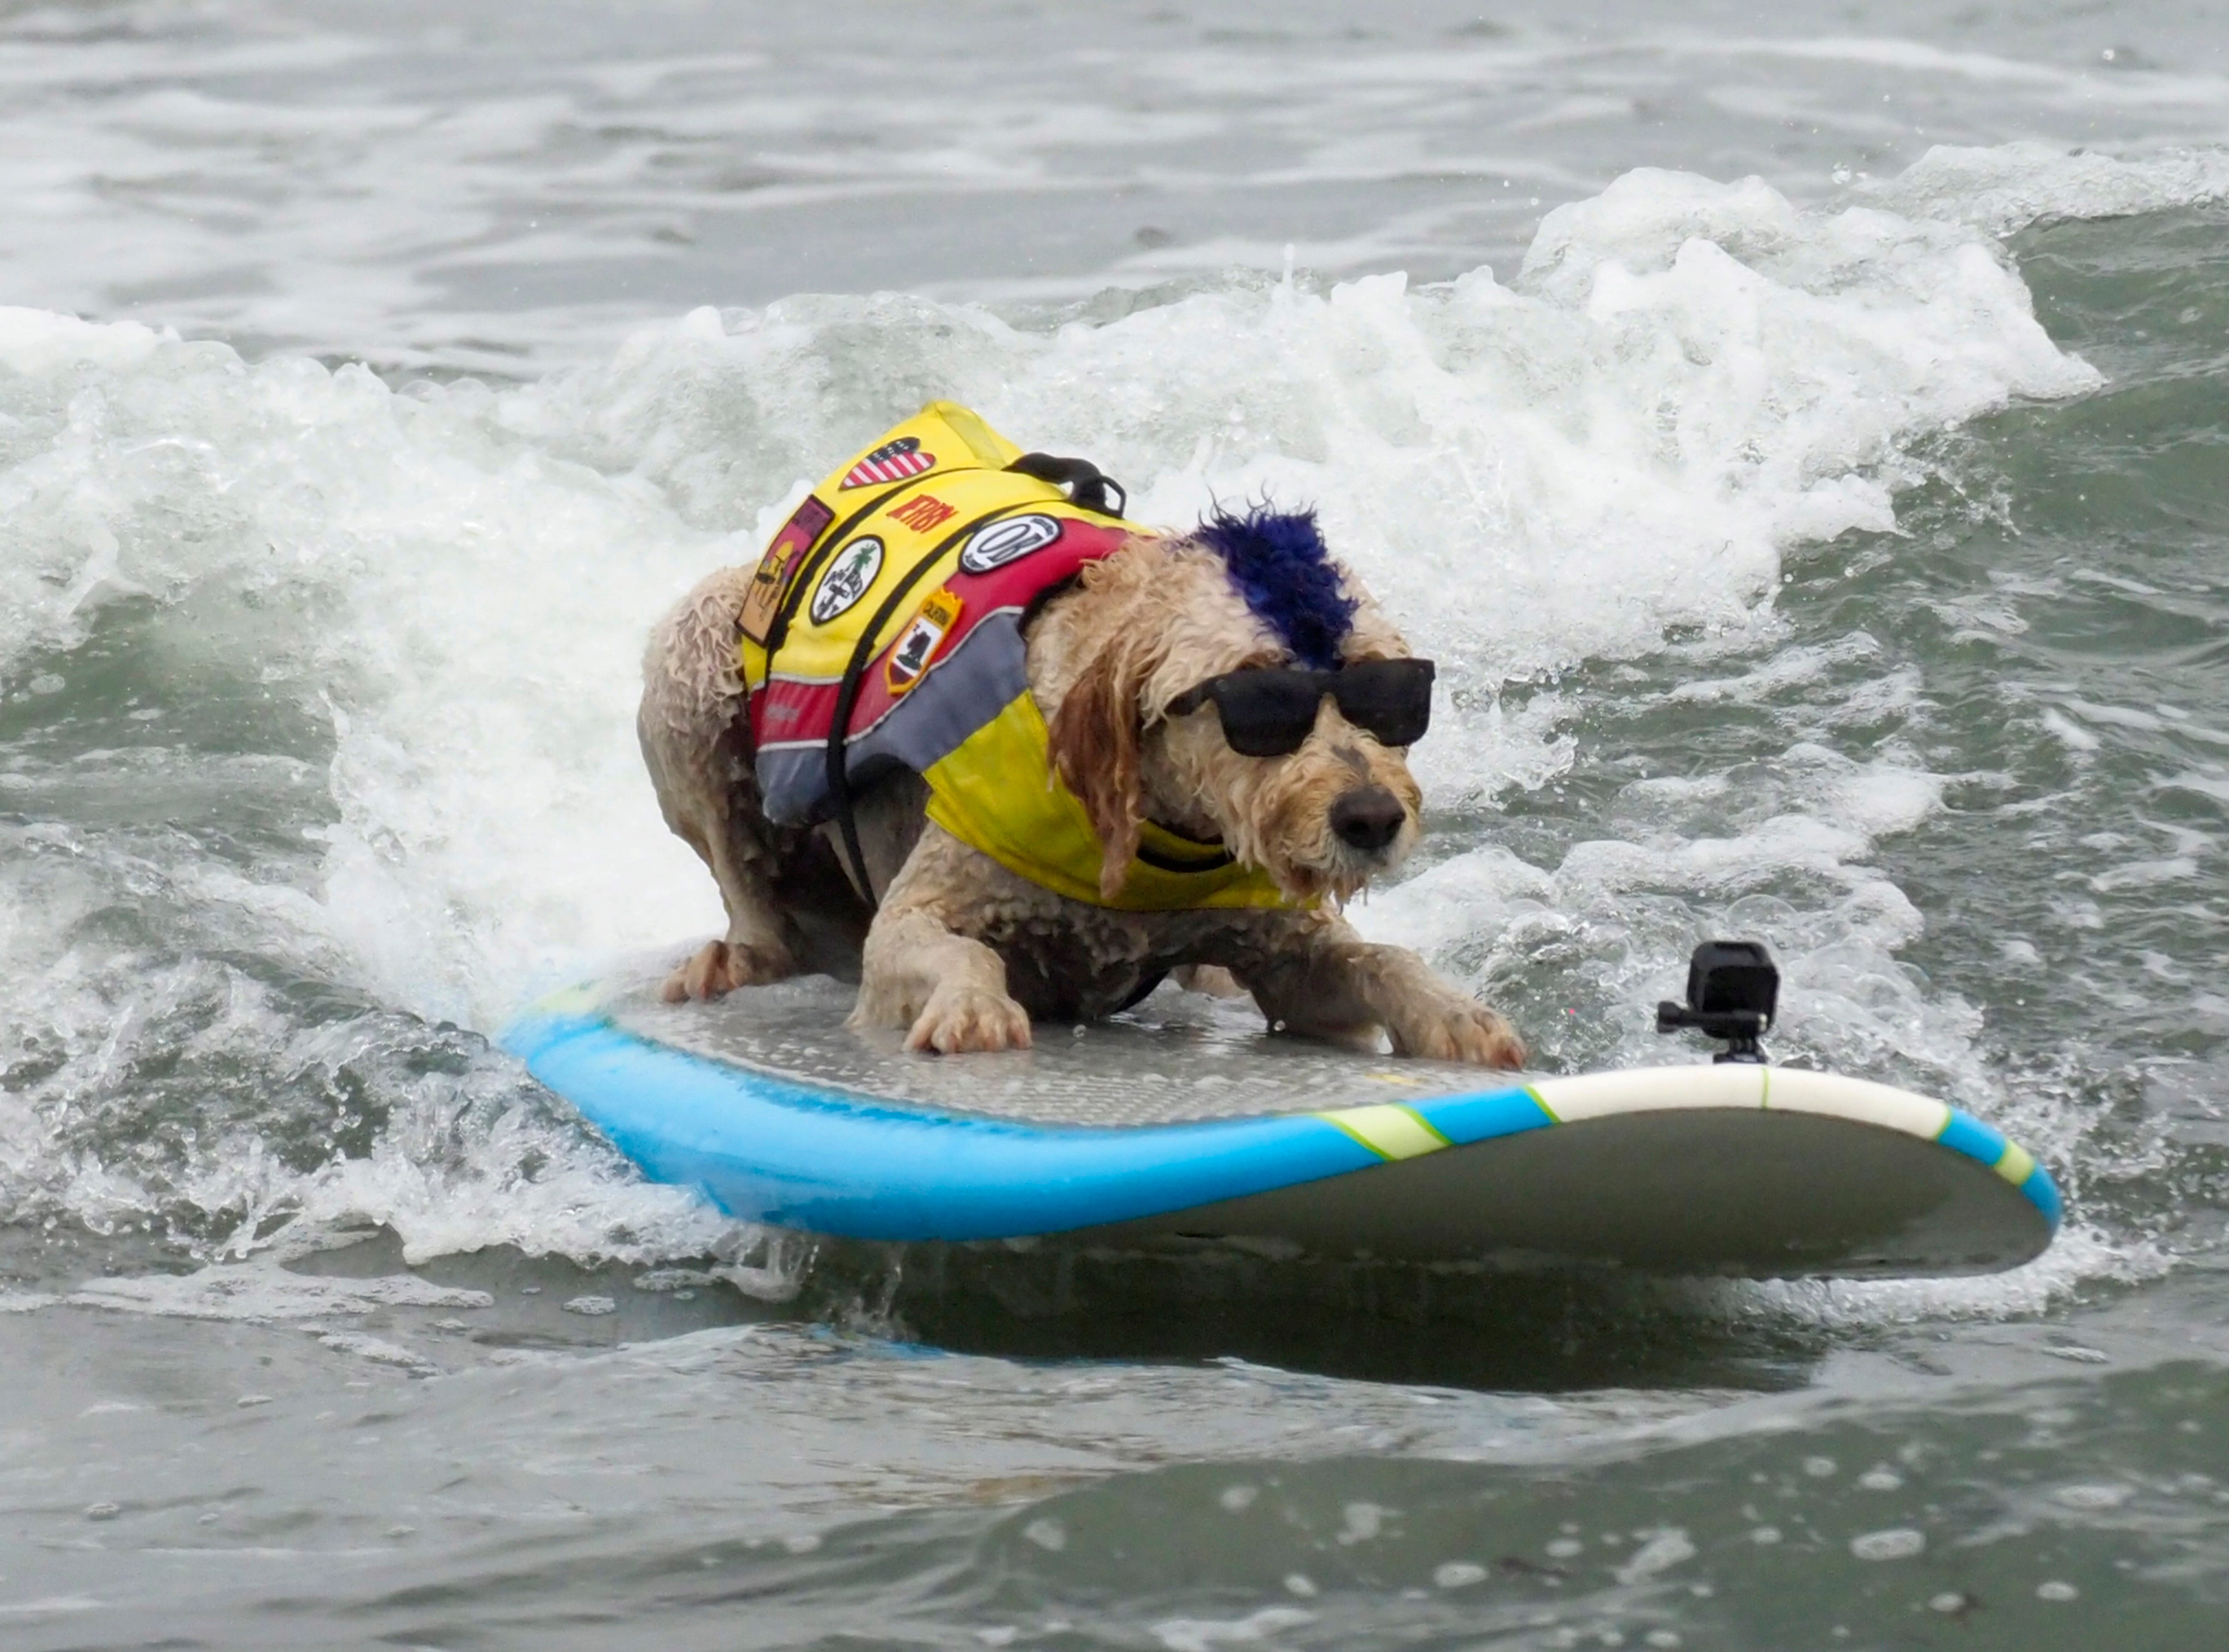 Aug. 4, 2018: Derby the dog surfs during the World Dog Surfing Championships at Linda Mar Beach in Pacifica, Calif.